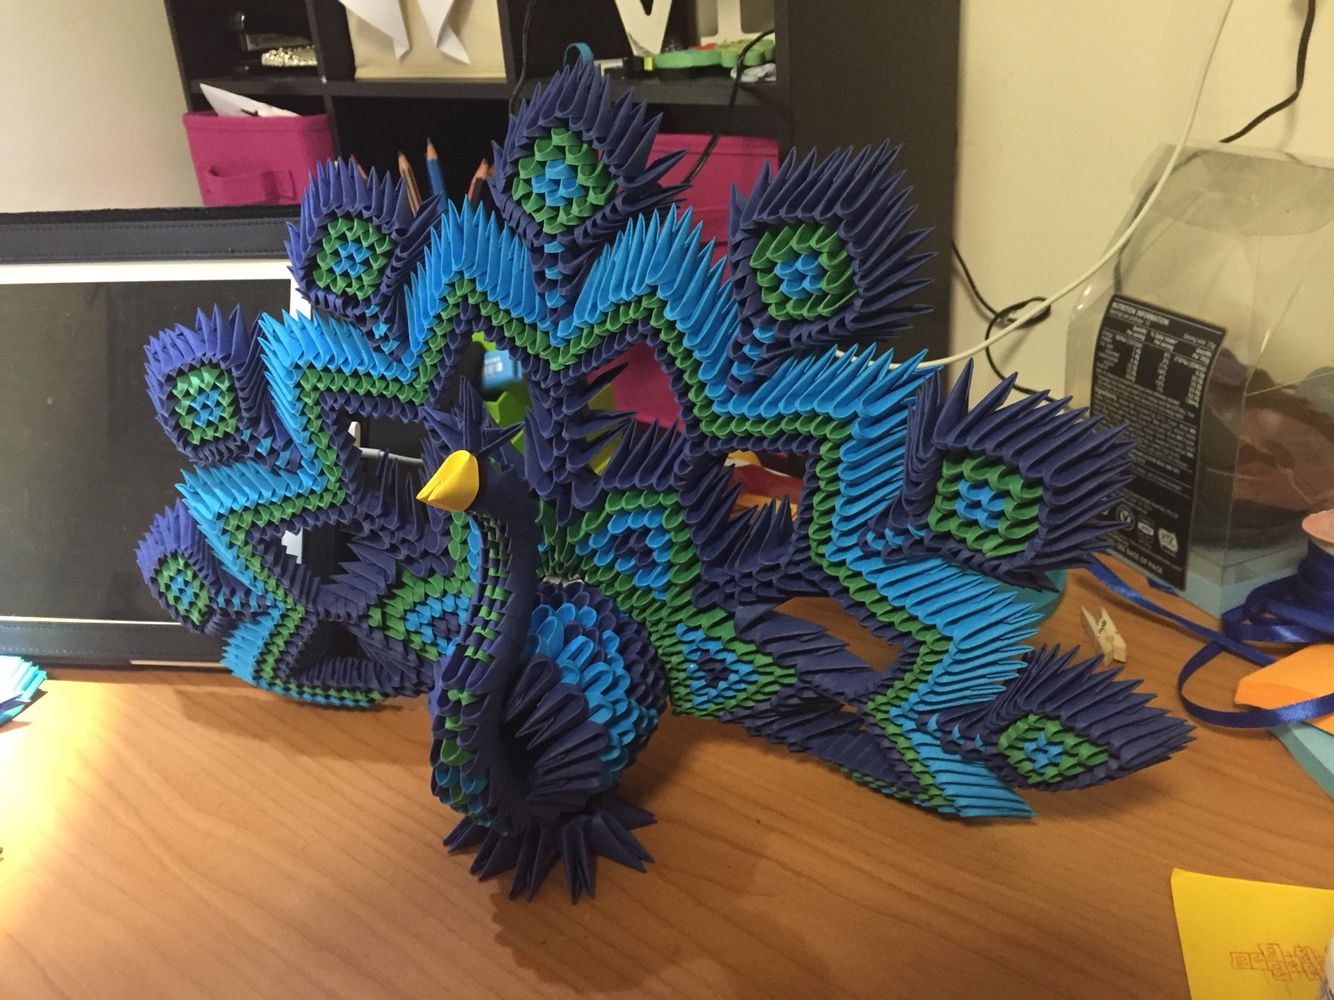 3d origami peacock tutorial by girnelis on youtube hours of 3d origami peacock tutorial by girnelis on youtube hours of work folding over 1000 jeuxipadfo Choice Image